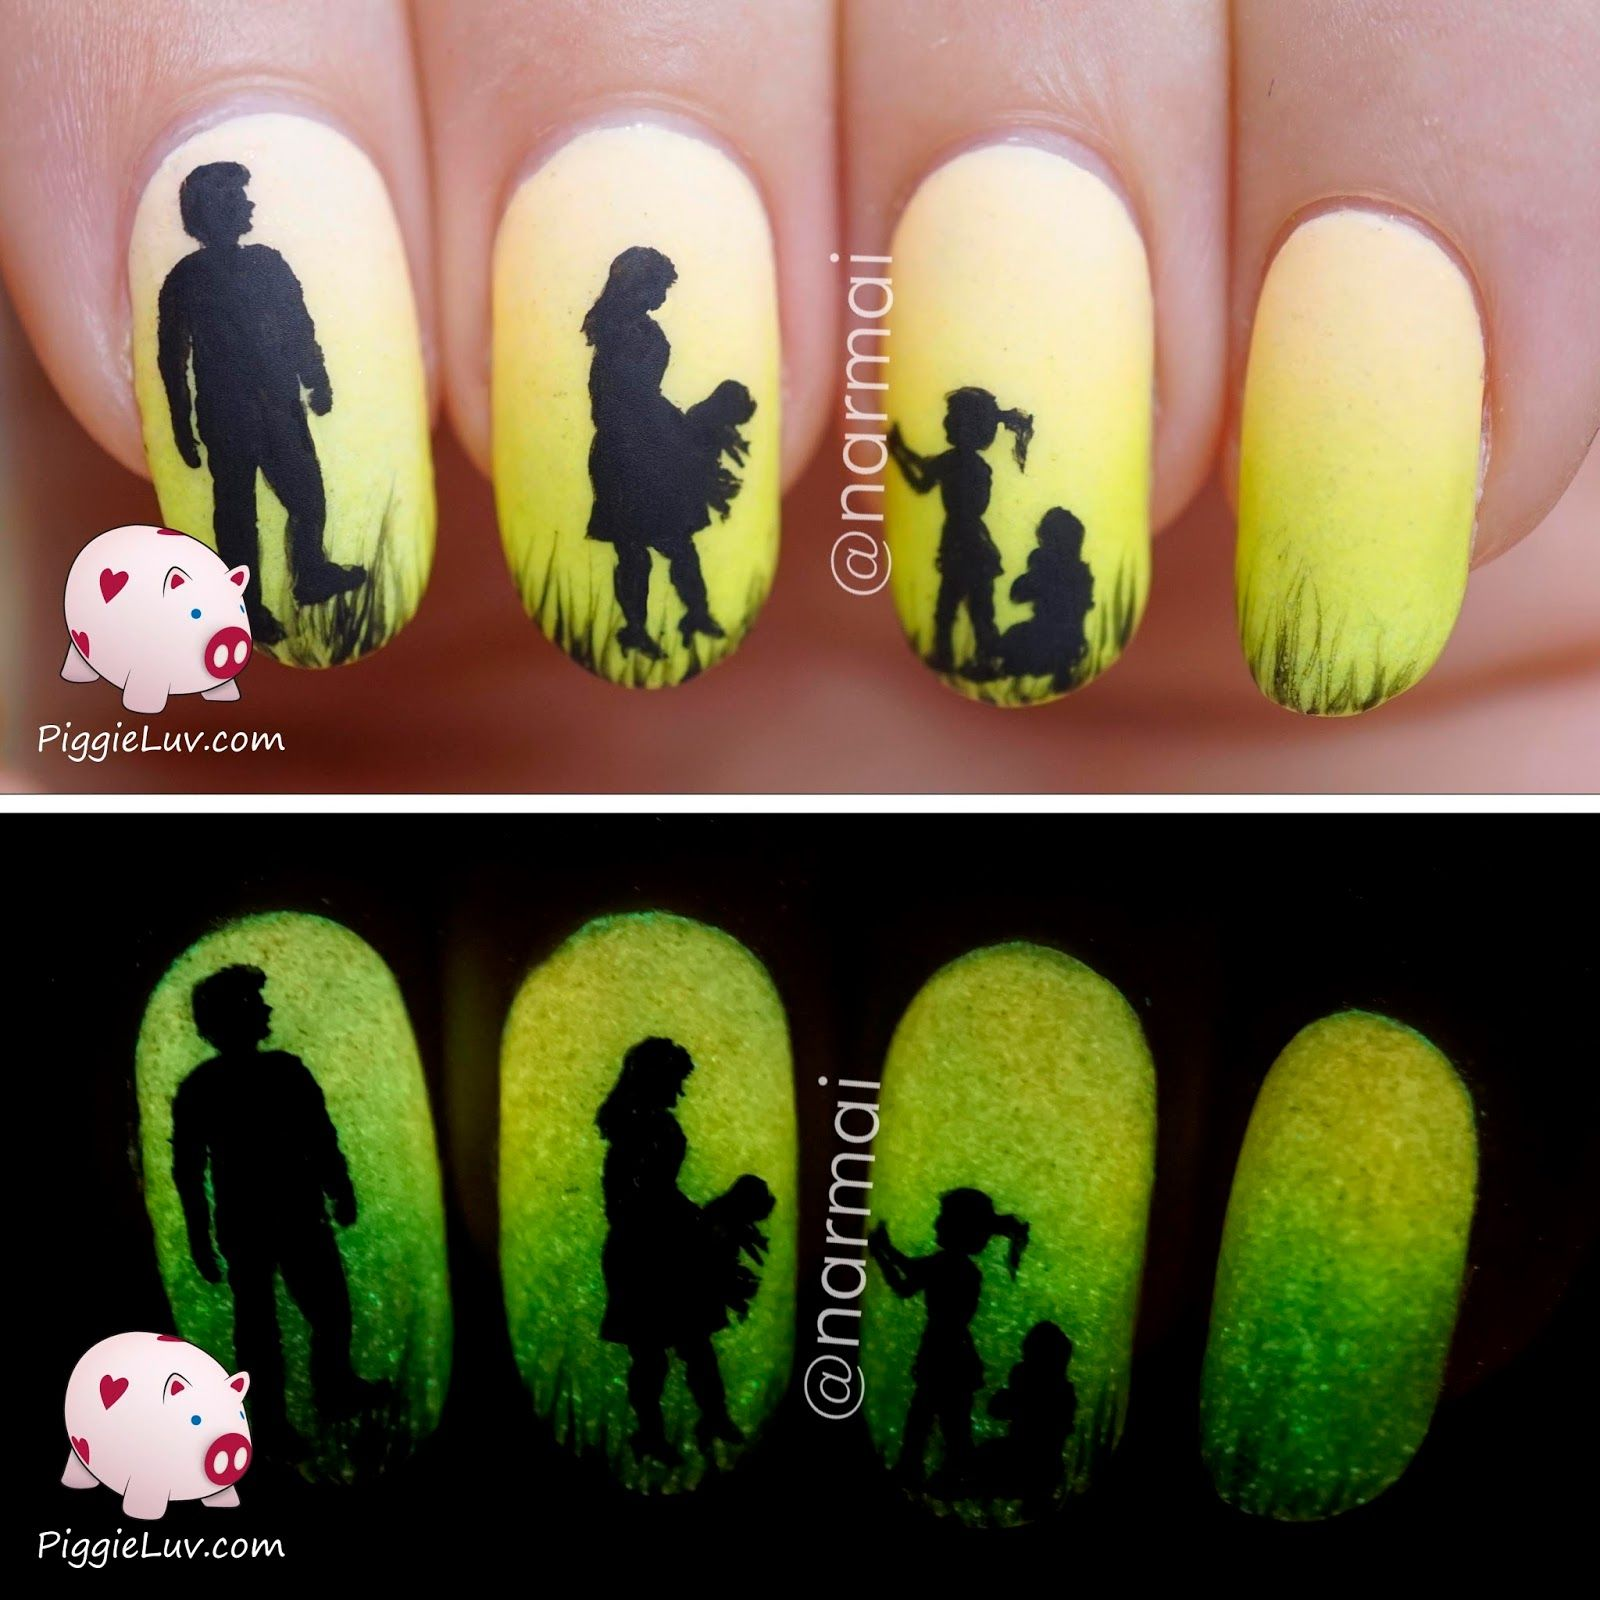 Epic Dog Story (5 glow in the dark manis!!!)   Dog stories, Nail ...